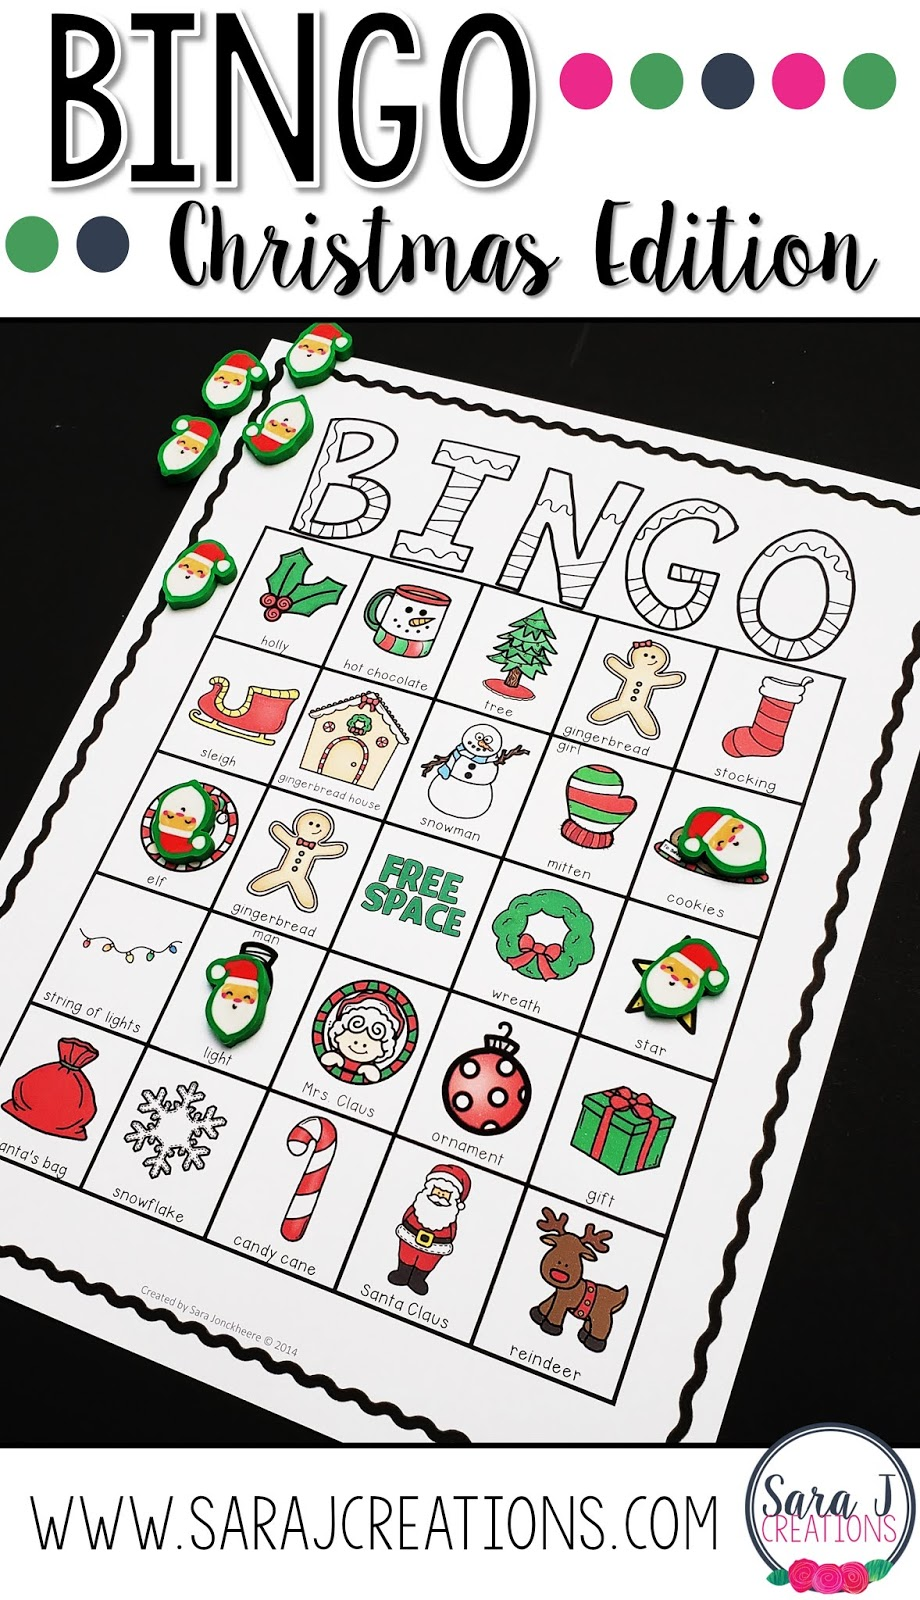 Have a blast at your Christmas party with Christmas Bingo. Perfect for kids! These printable cards include 30 different game boards so just print and play with your large group.